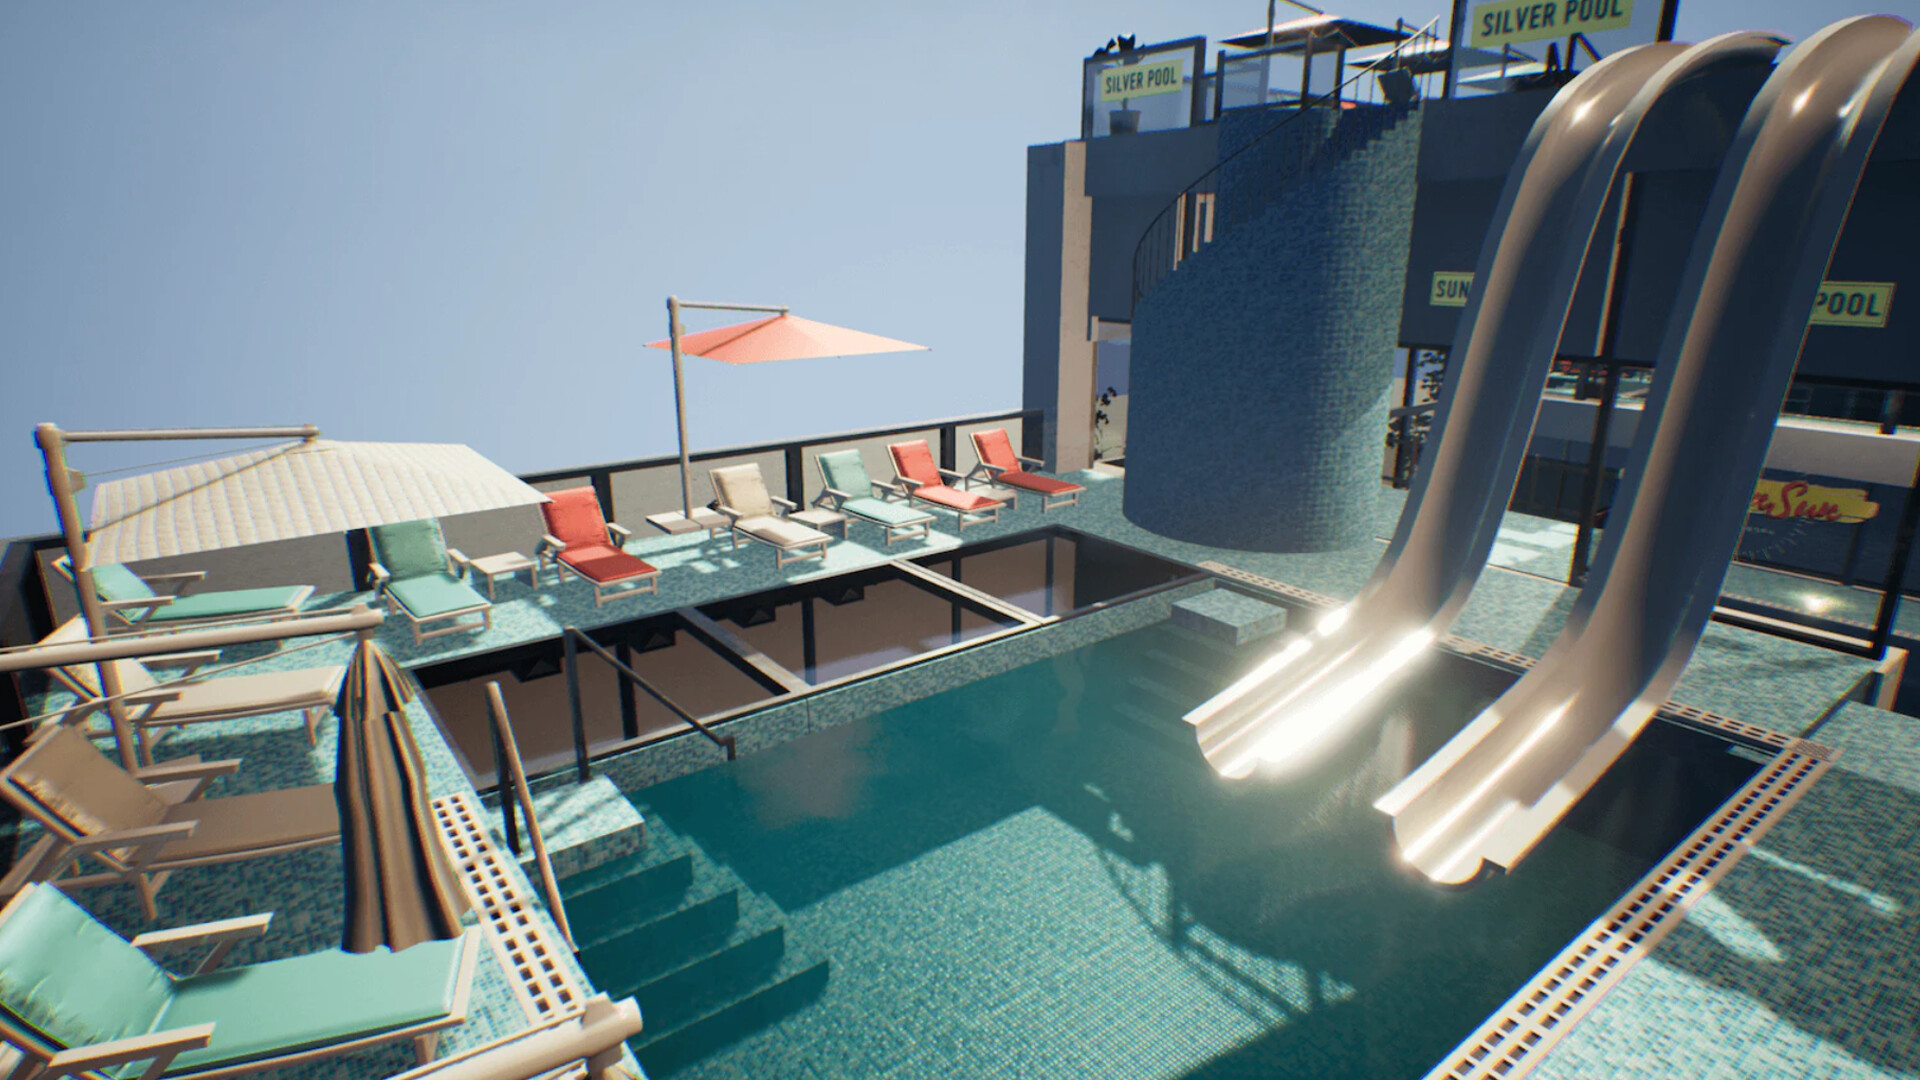 An image showing Water World asset pack, created with Unreal Engine 4.